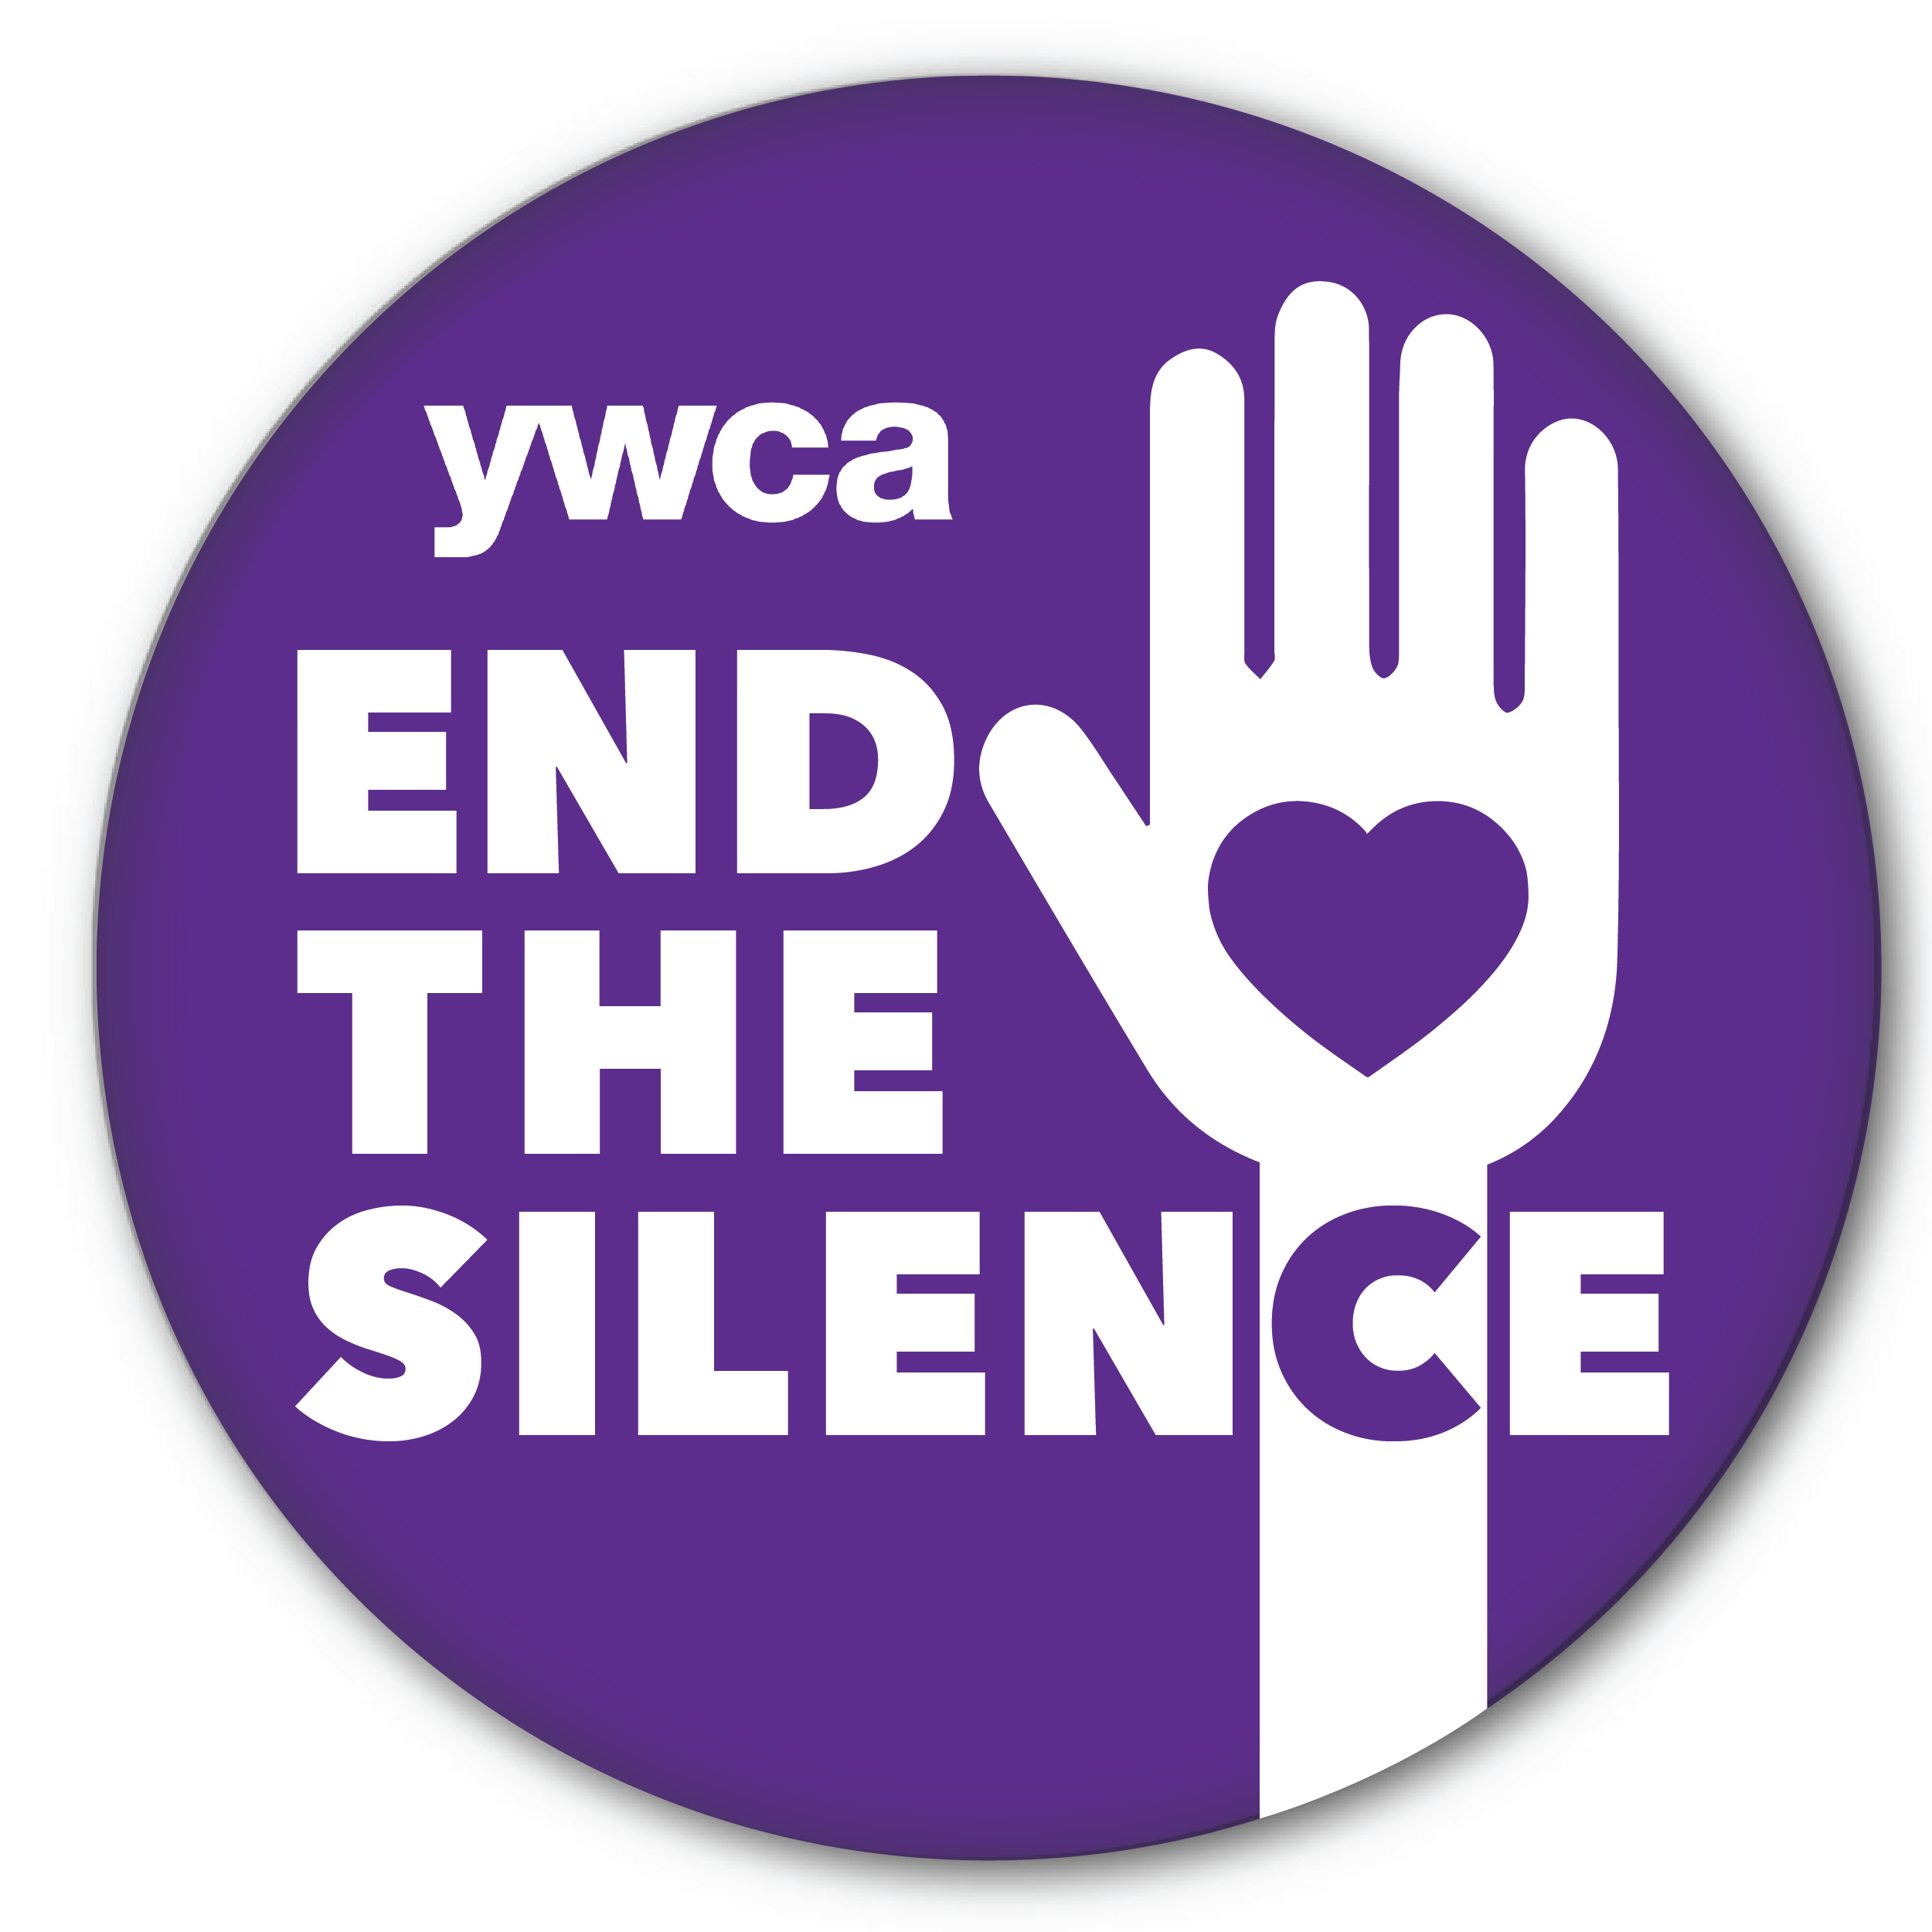 YWCA End the Silence